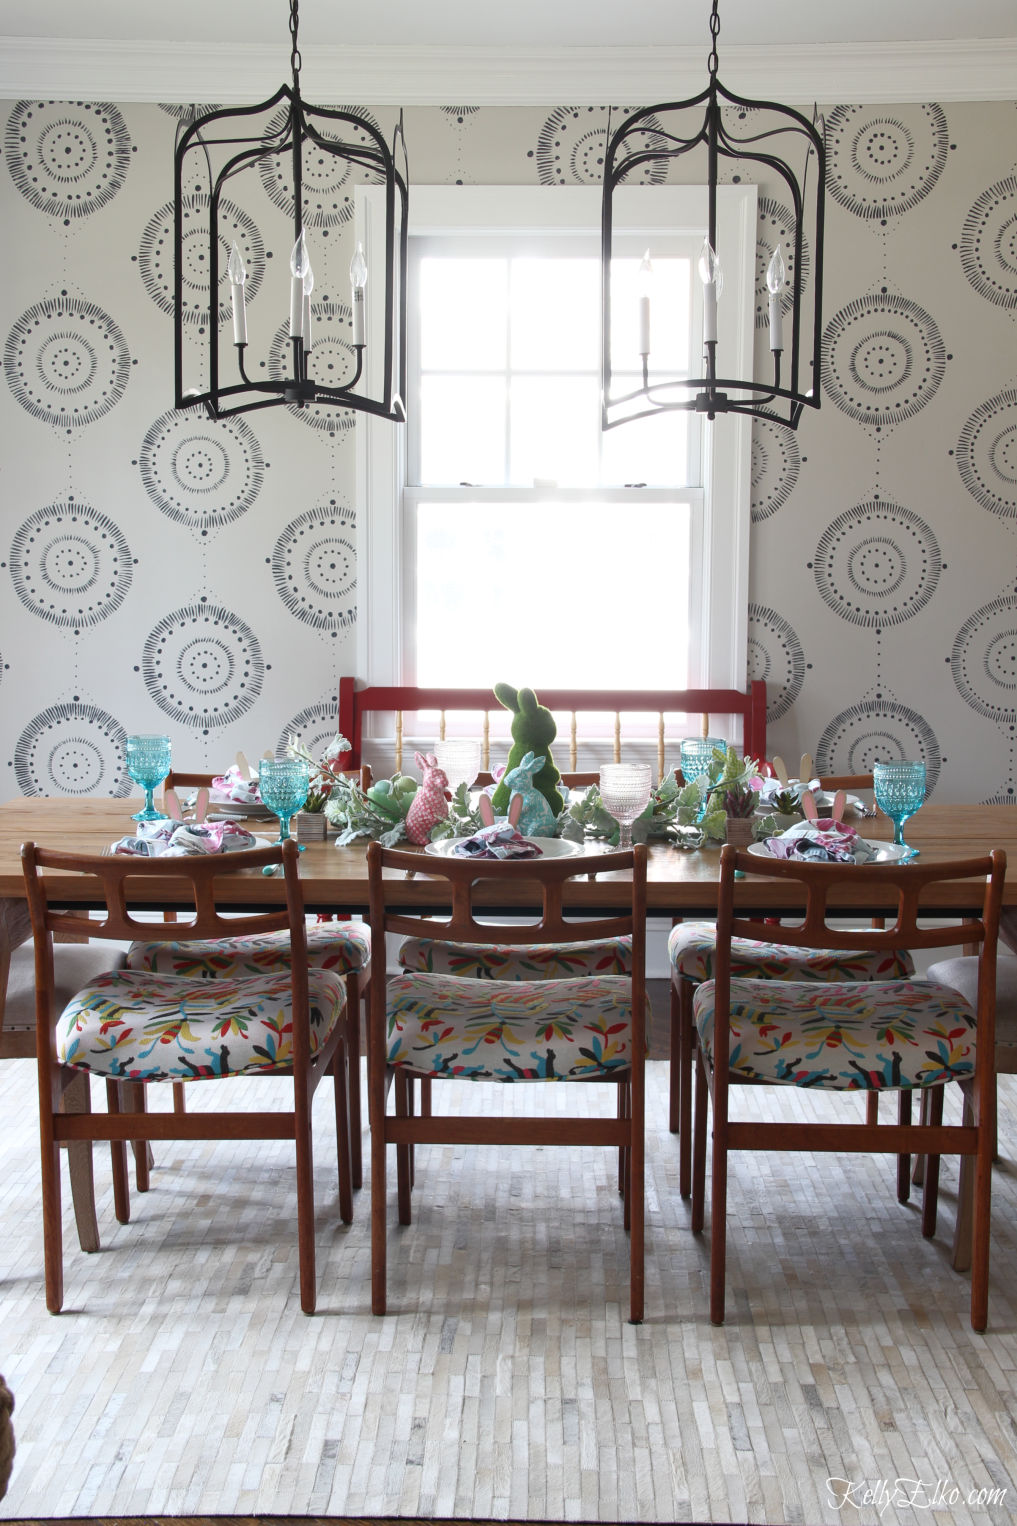 How to make a DIY painted wall mural - get the look of wallpaper at a fraction of the cost kellyelko.com #diydecor #diypaint #paintingtips #murals #wallmural #diningroom #lighting #vintagedecor #homedecor